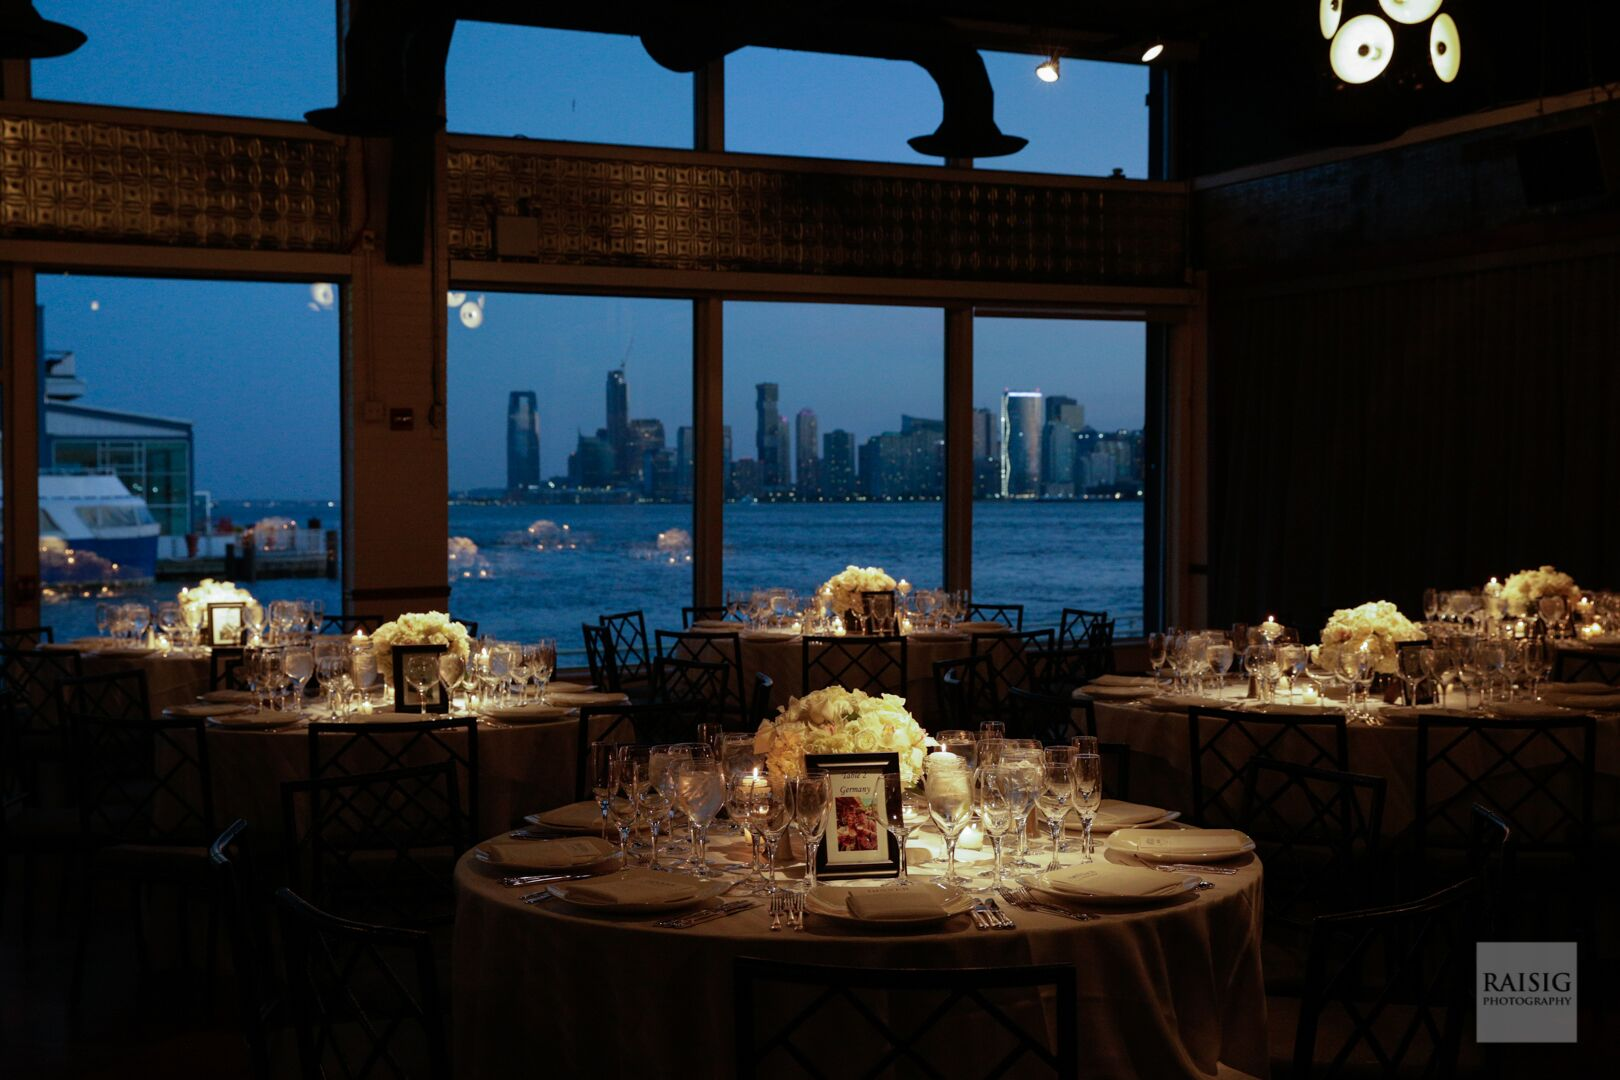 dinner tables with stunning view in the background of the Hudson River and New Jersey Skyline at dusk